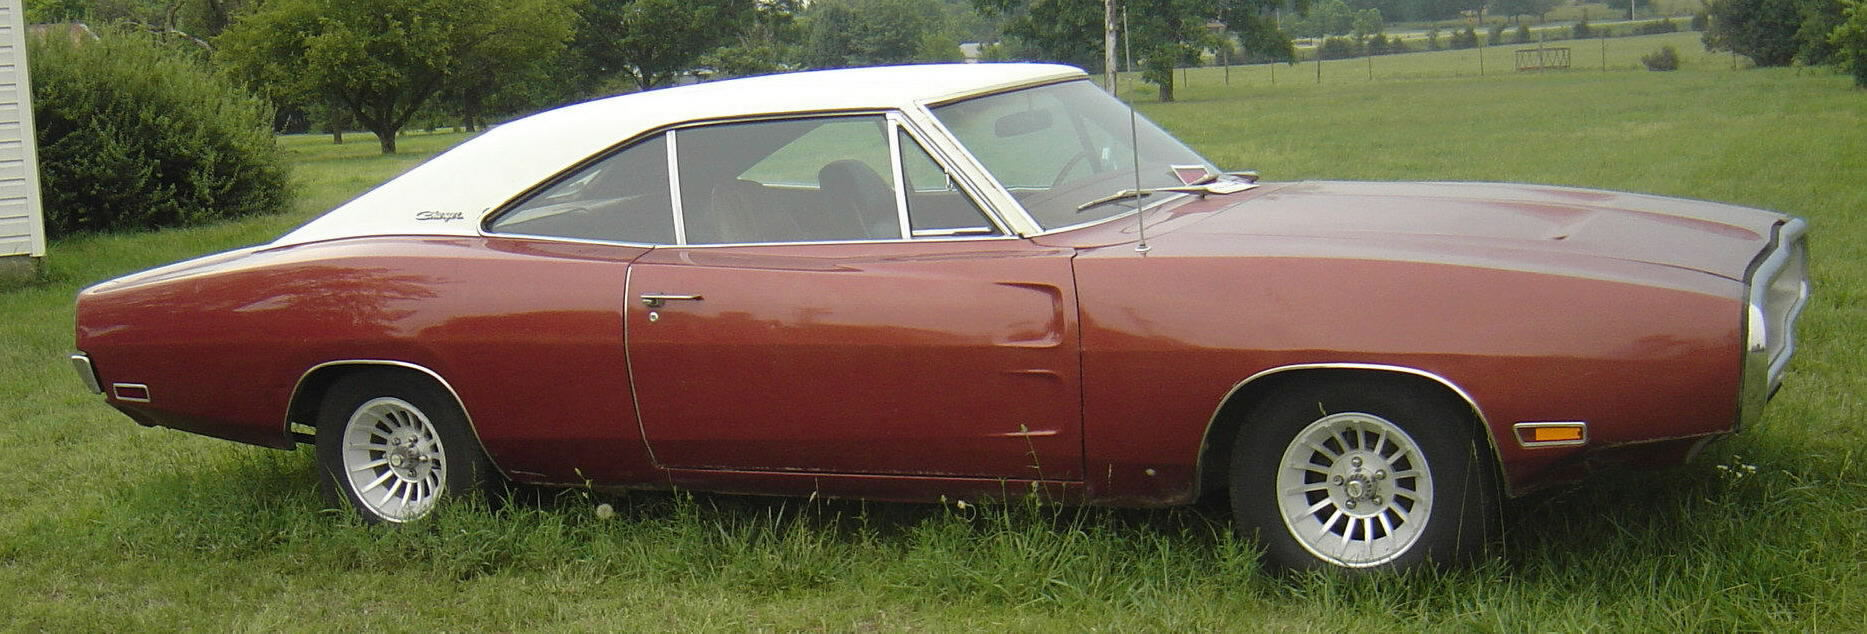 1970 Dodge Charger 500,